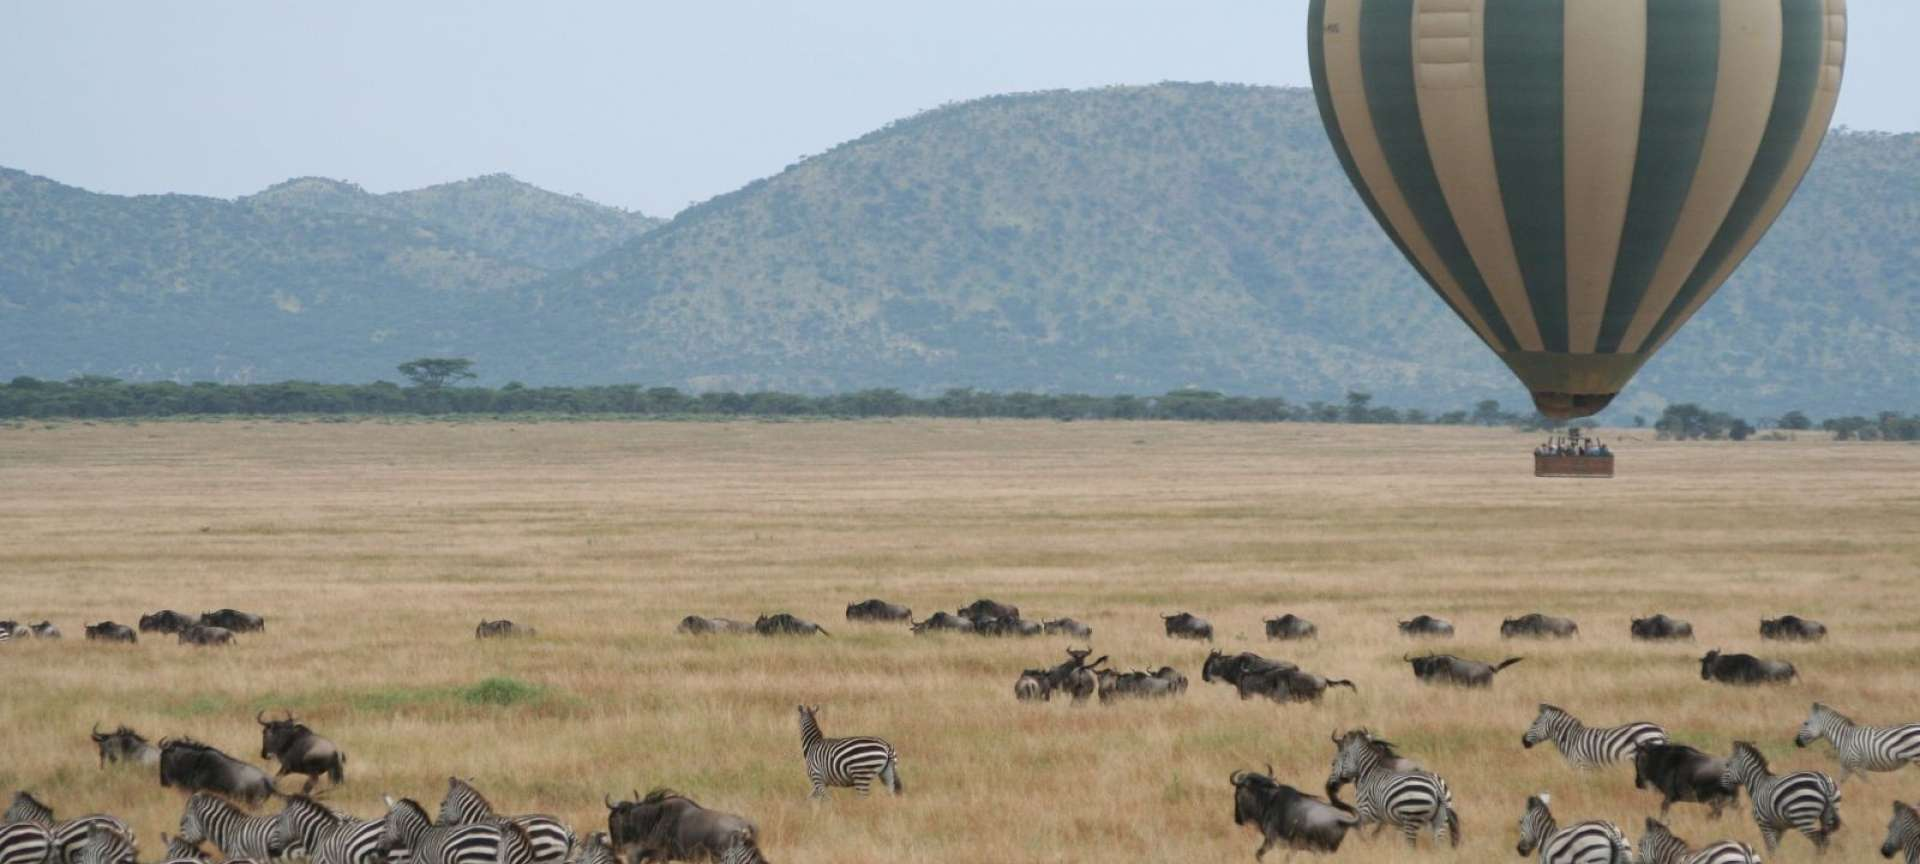 Hot air ballooning over the Serengeti can give you a new perspective